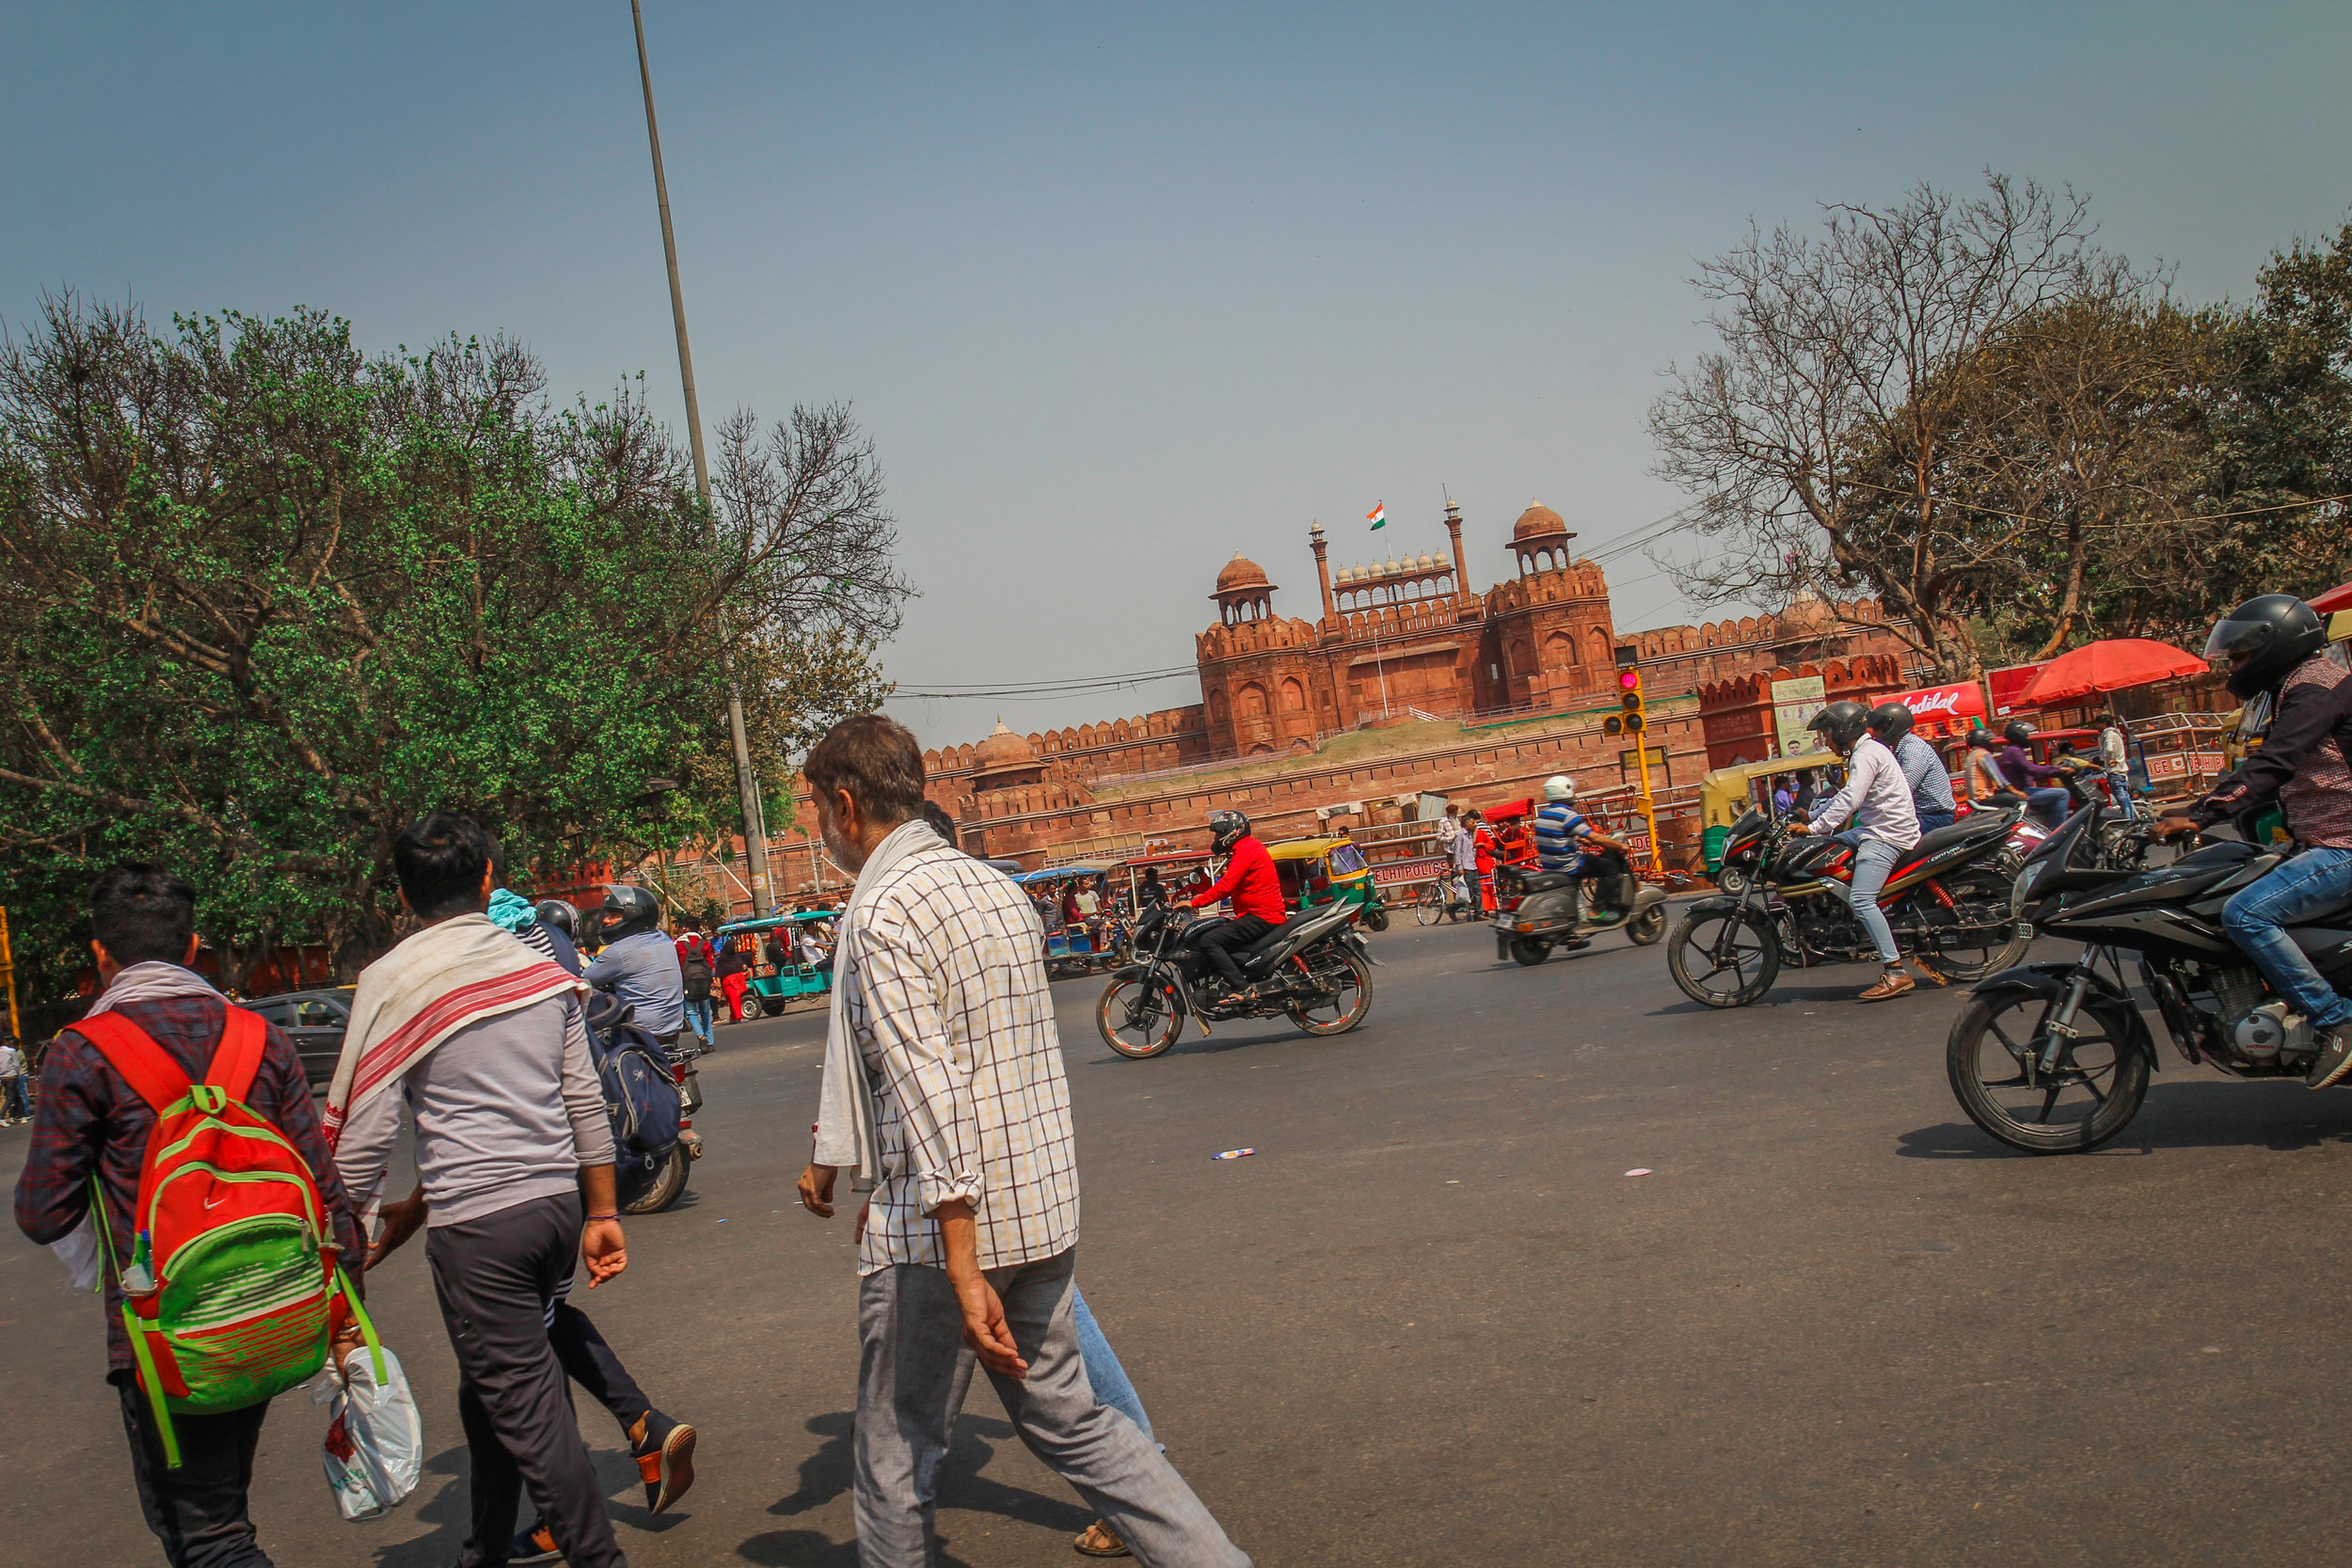 withkidsontheroad_India_chandni_chowk-10.JPG